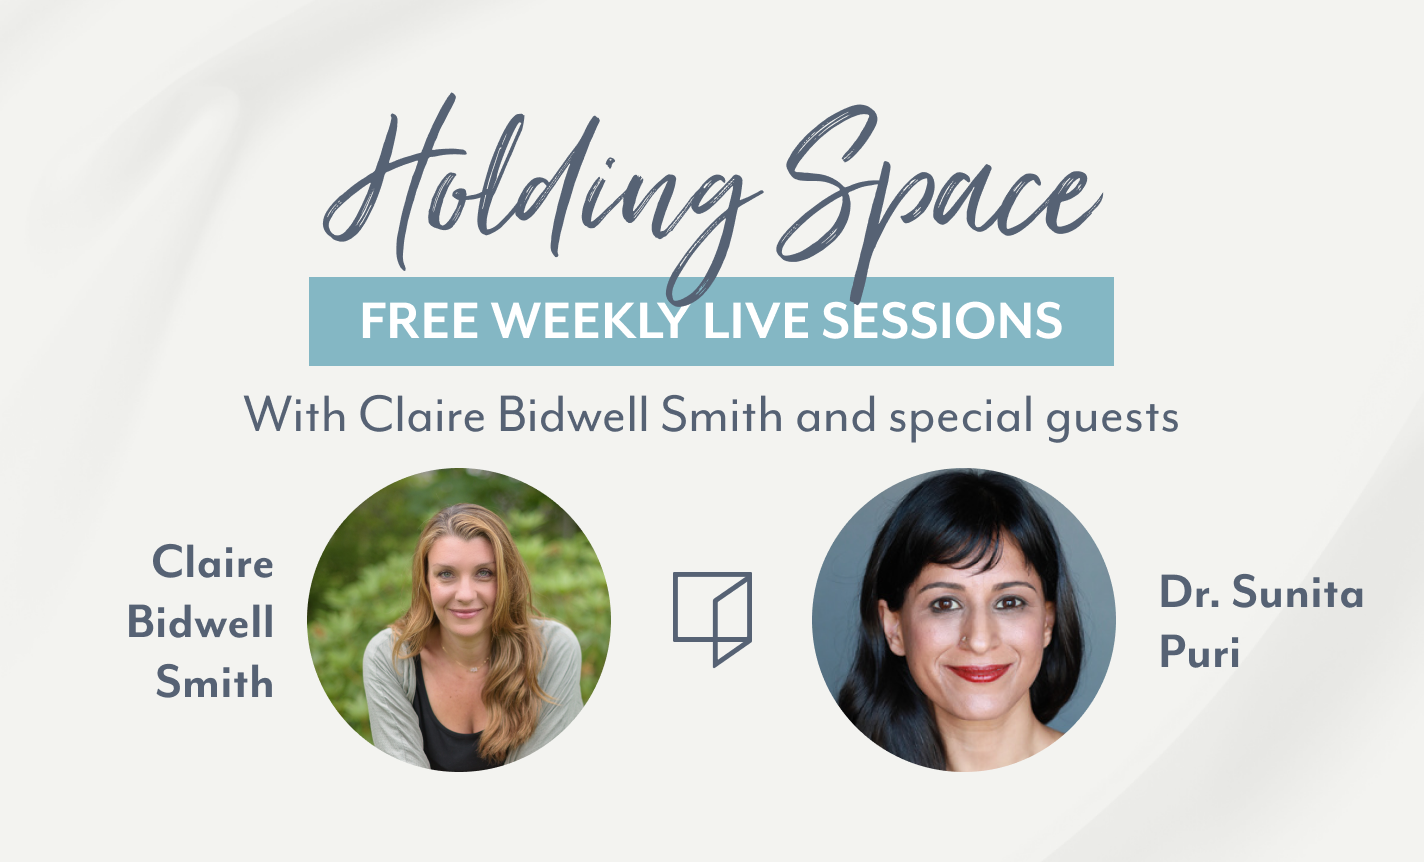 Holding Steady with Claire Bidwell Smith and Sunita Puri